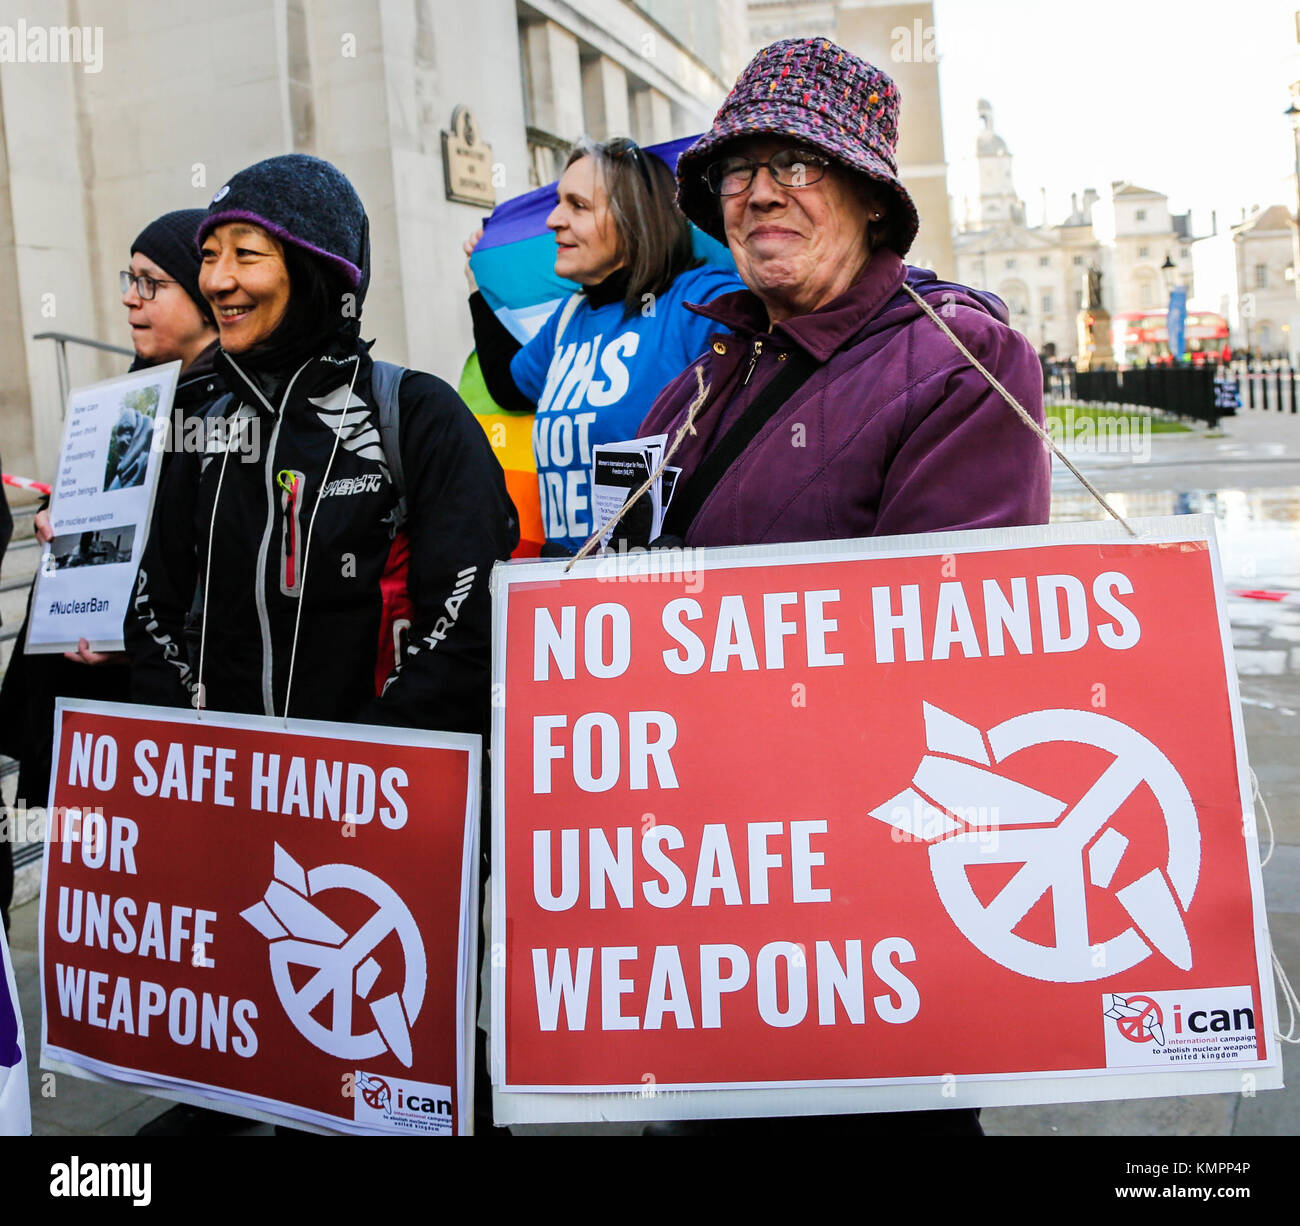 London, UK. 9 December 2017. 'No safe hands for unsafe weapons'. Crowds gathered at The Ministry of Defence - Stock Image